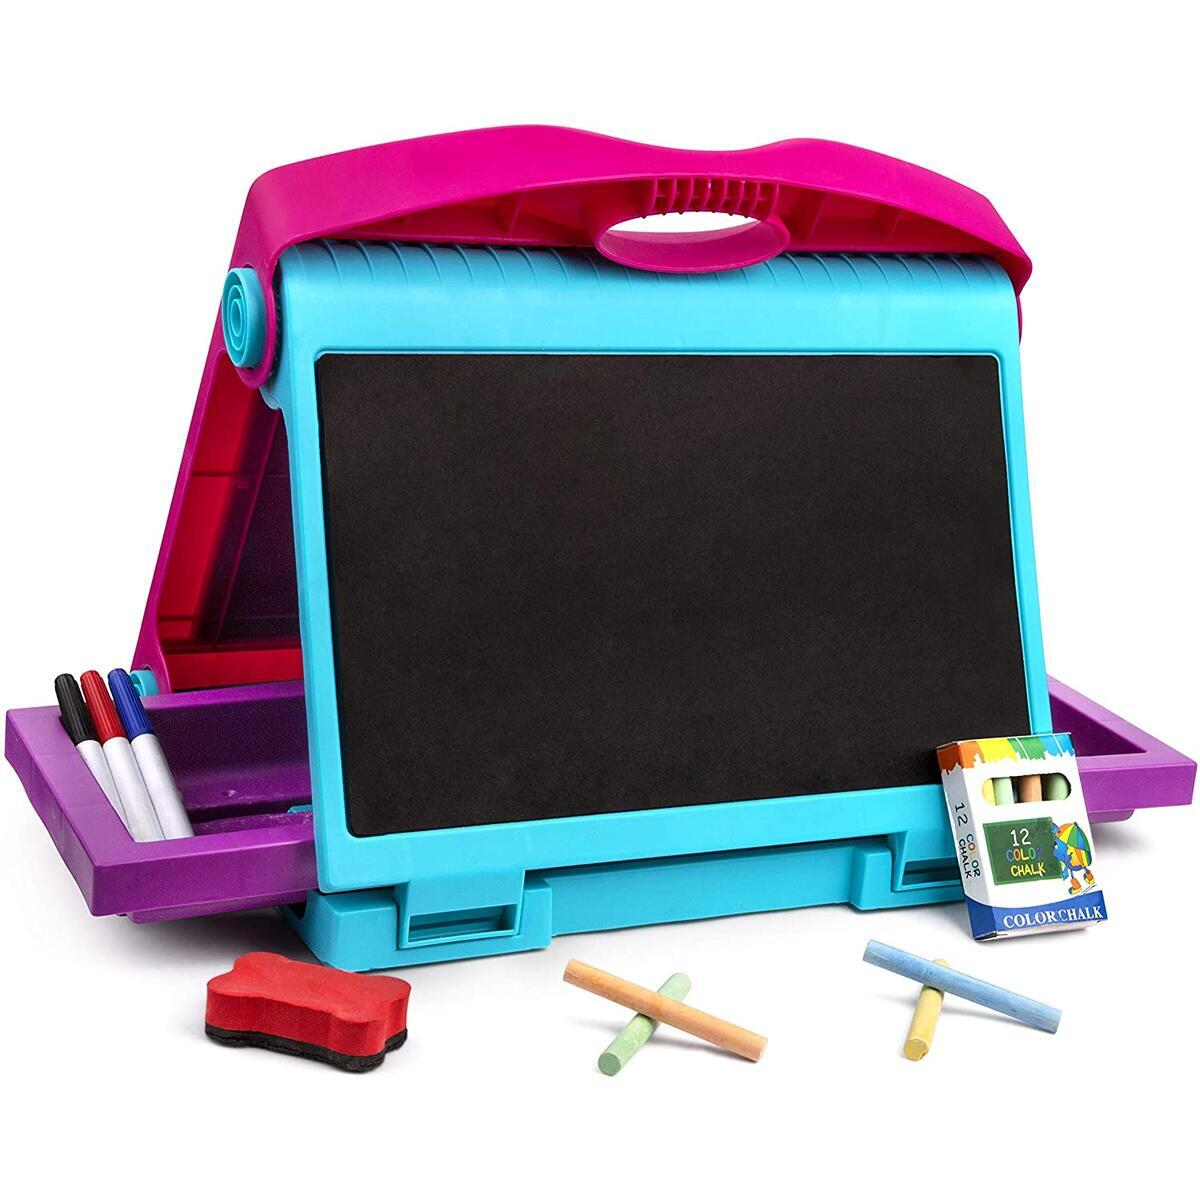 Art Double Sided Tabletop Art Easel for Kids - 2-in-1 Dry Erase Board and Chalkboard, Great Coloring Easel for Boys and Girls.